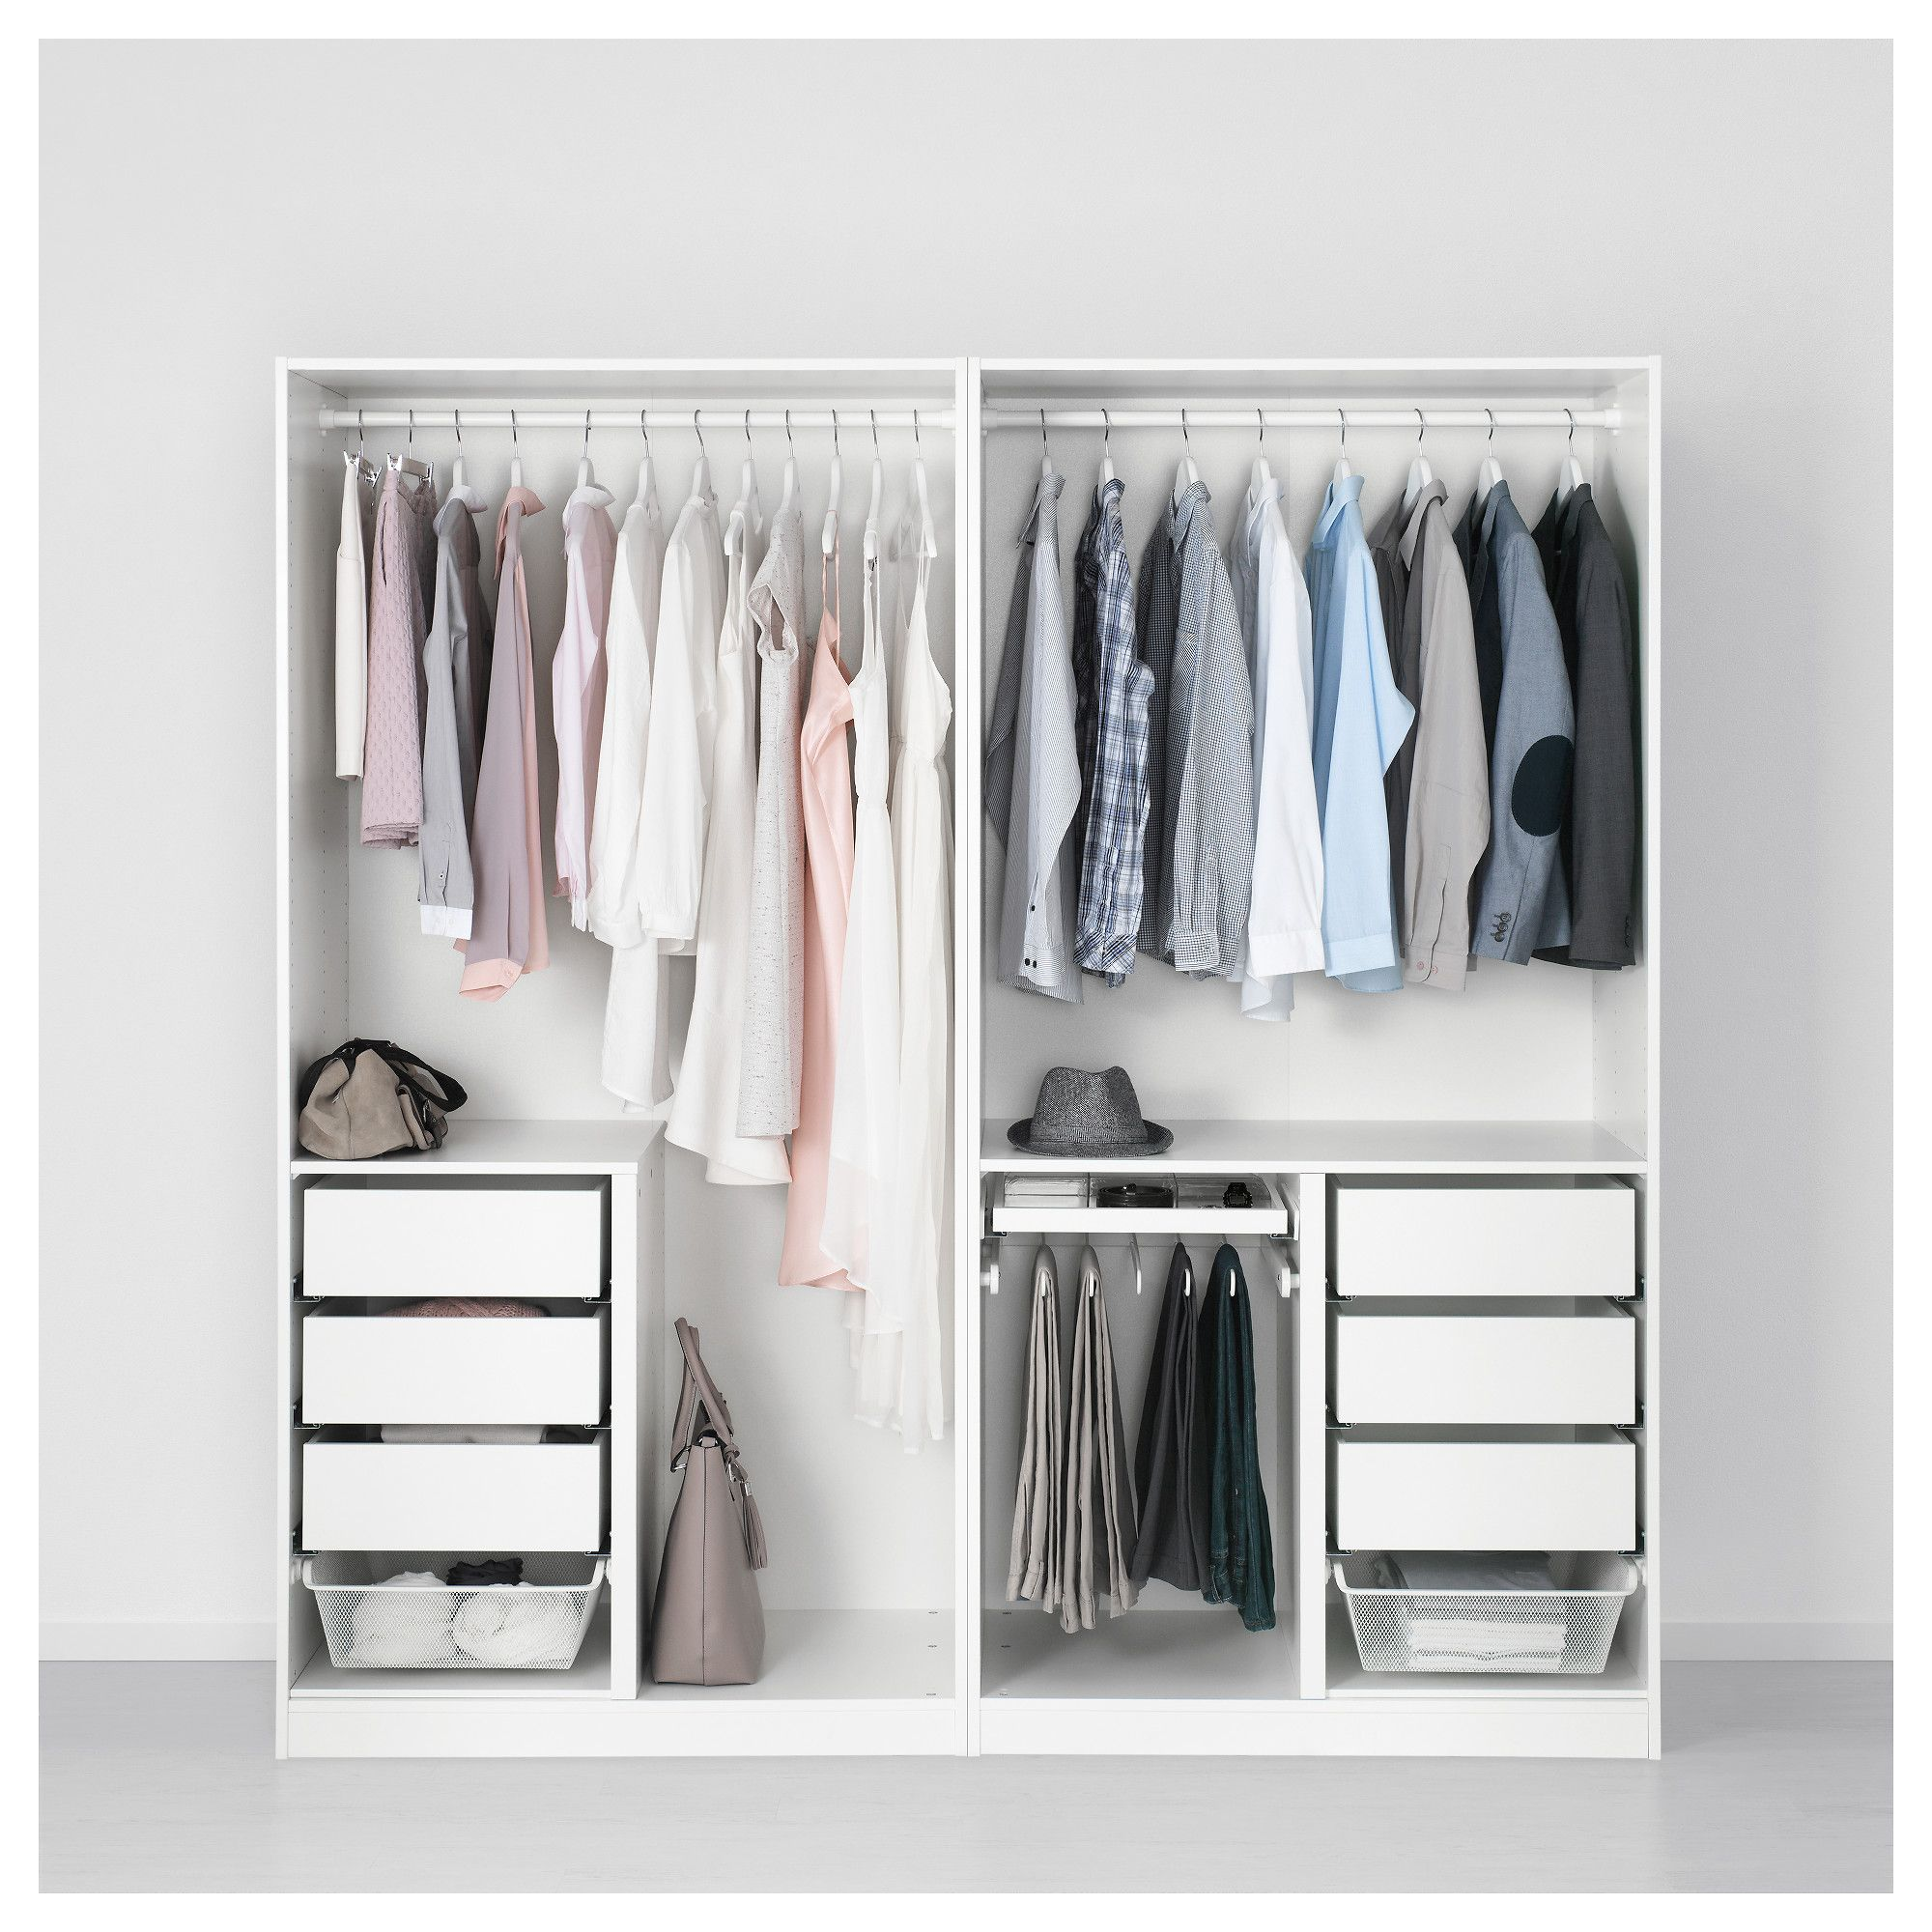 Ikea Zimmerplaner Ikea Pax Wardrobe White Forsand Vikedal In 2019 Products